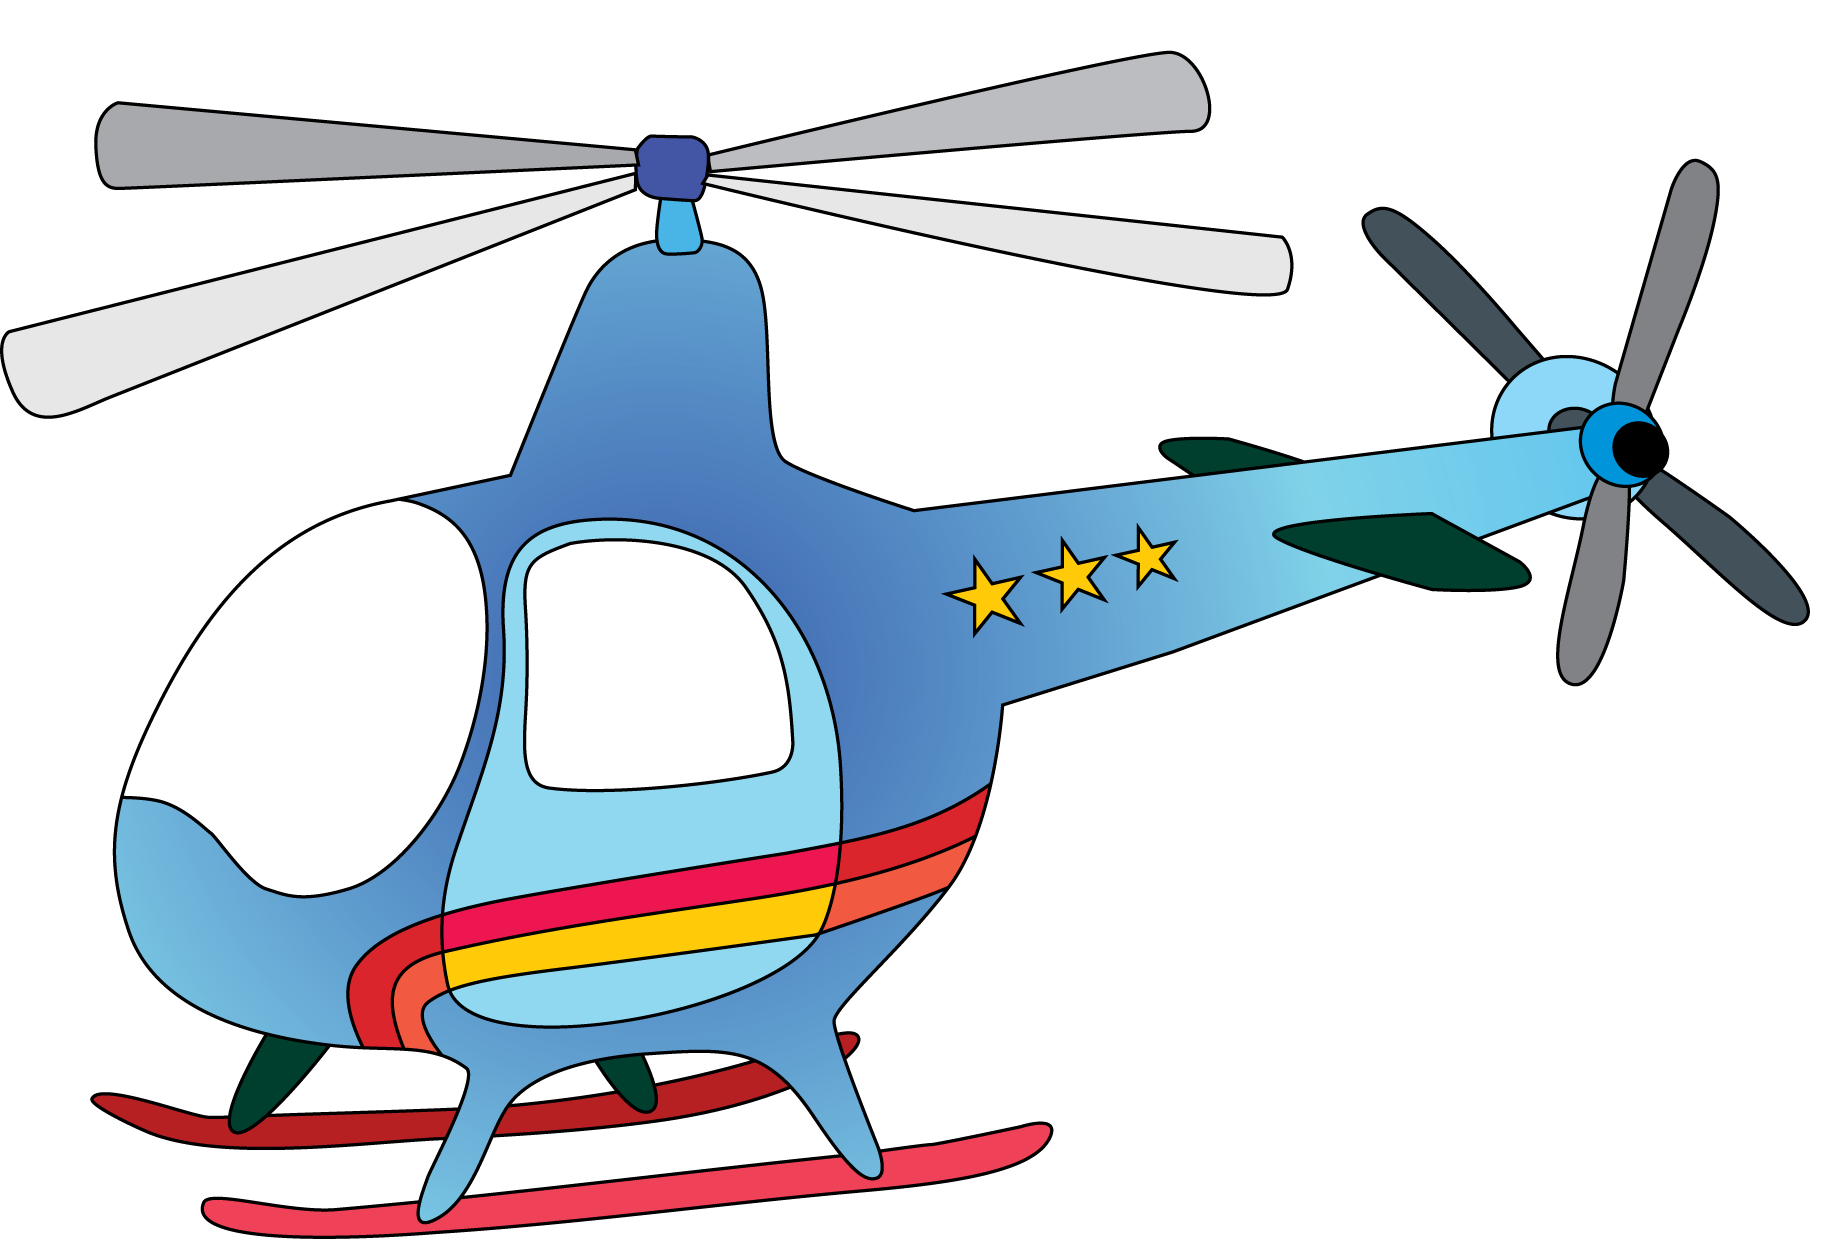 Helicopter clipart helicopter propeller. Panda free images info